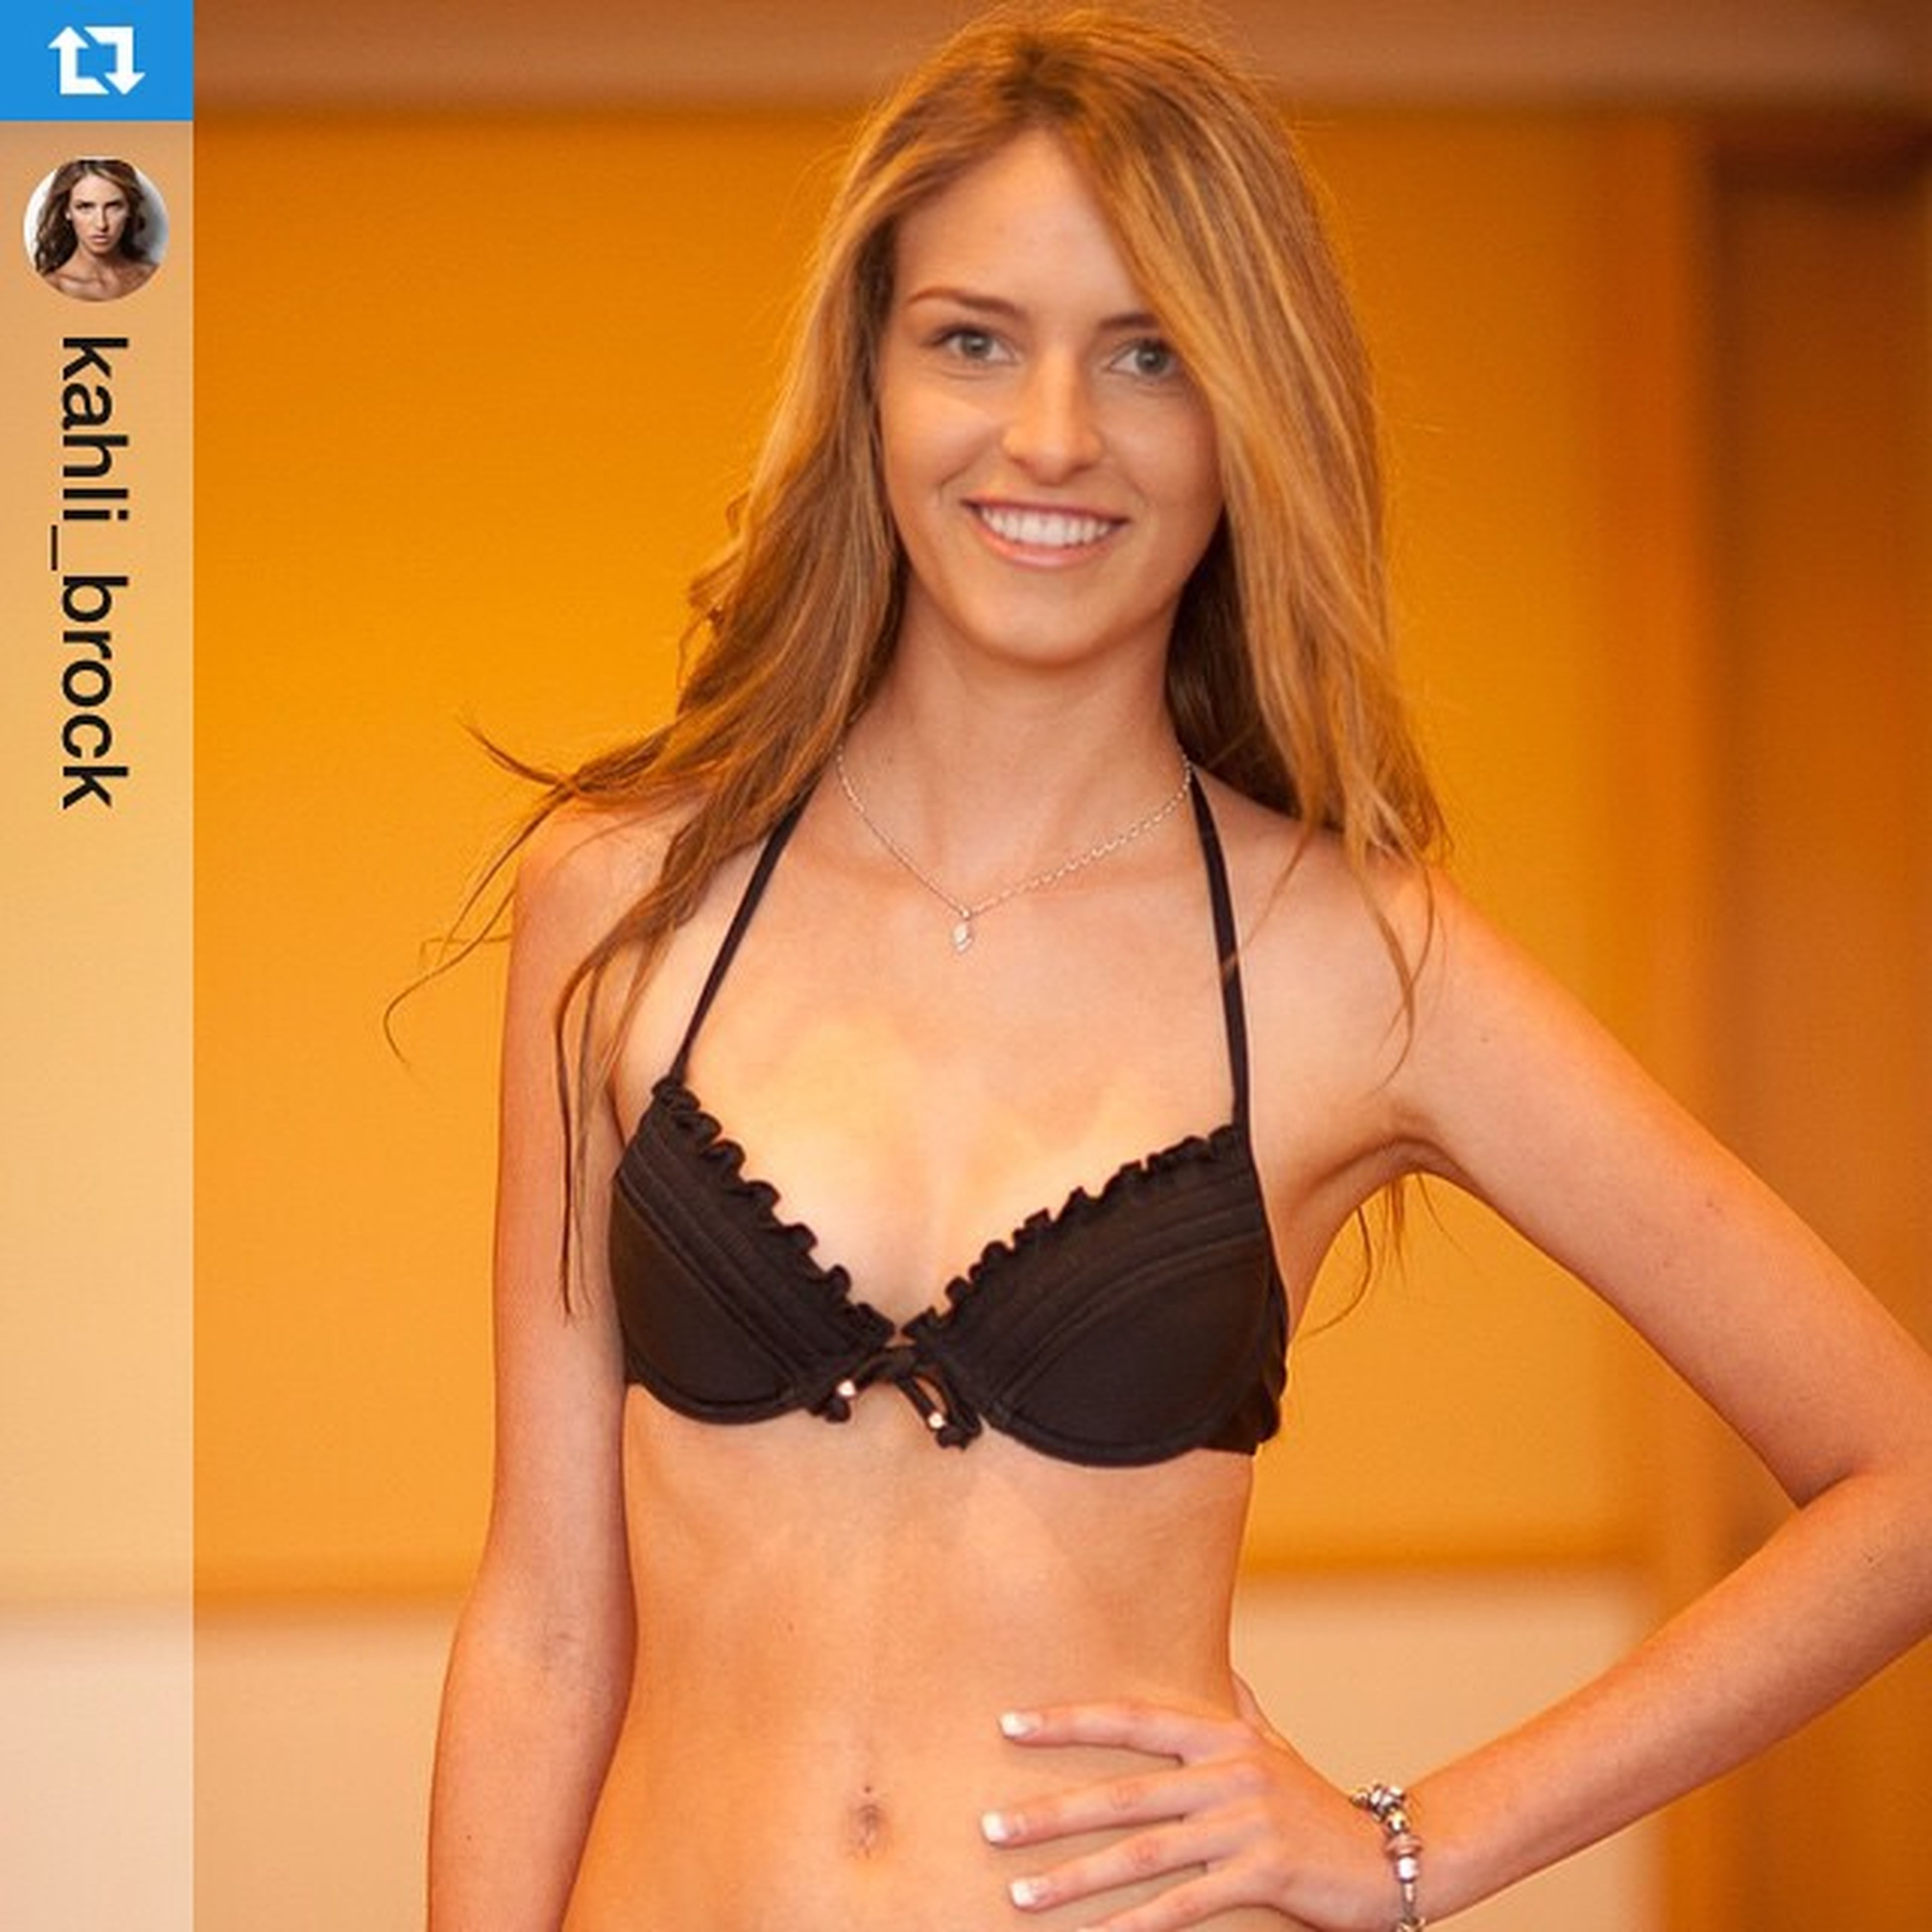 Flashbackfriday repost from @kahli_brock first time met during casting for @goldcoastswimfashionfestival .・・・FLASHBACK : My first modelling competition. Sunseeker Casting Madeit Top20 Woohoo Flashback Model Kahlibrock